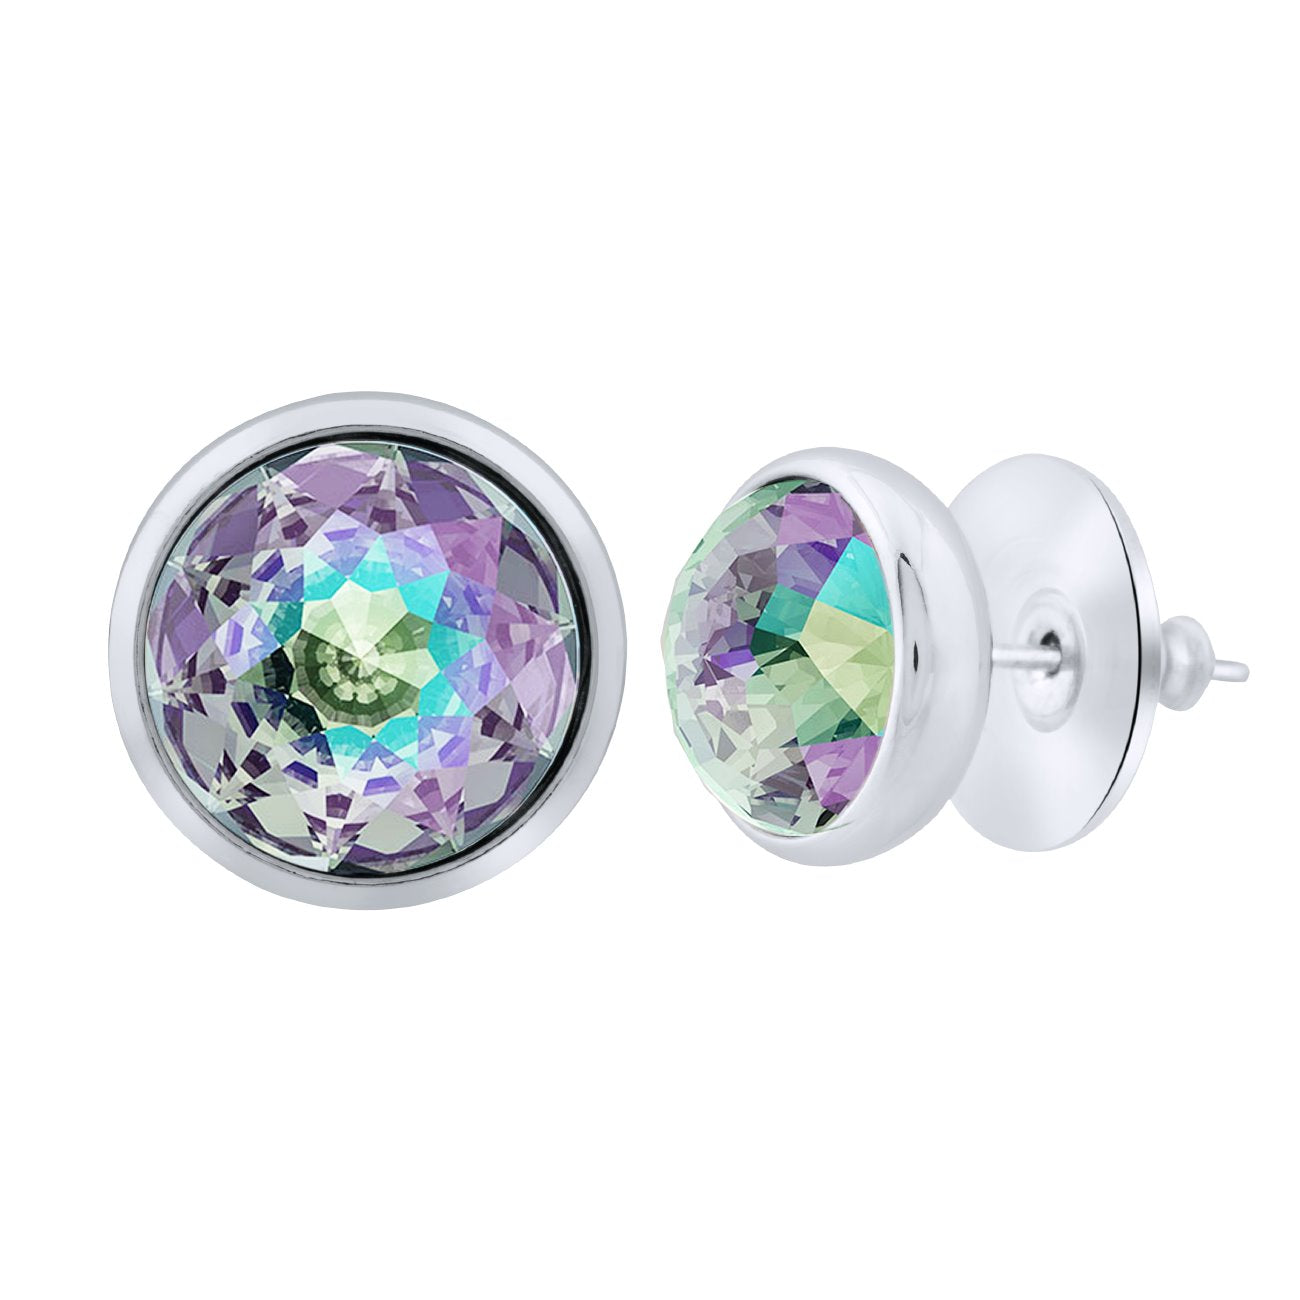 Elysees Stud Earrings silver Paradise Shine JOY OF SPARKLE FOREVER CRYSTALS